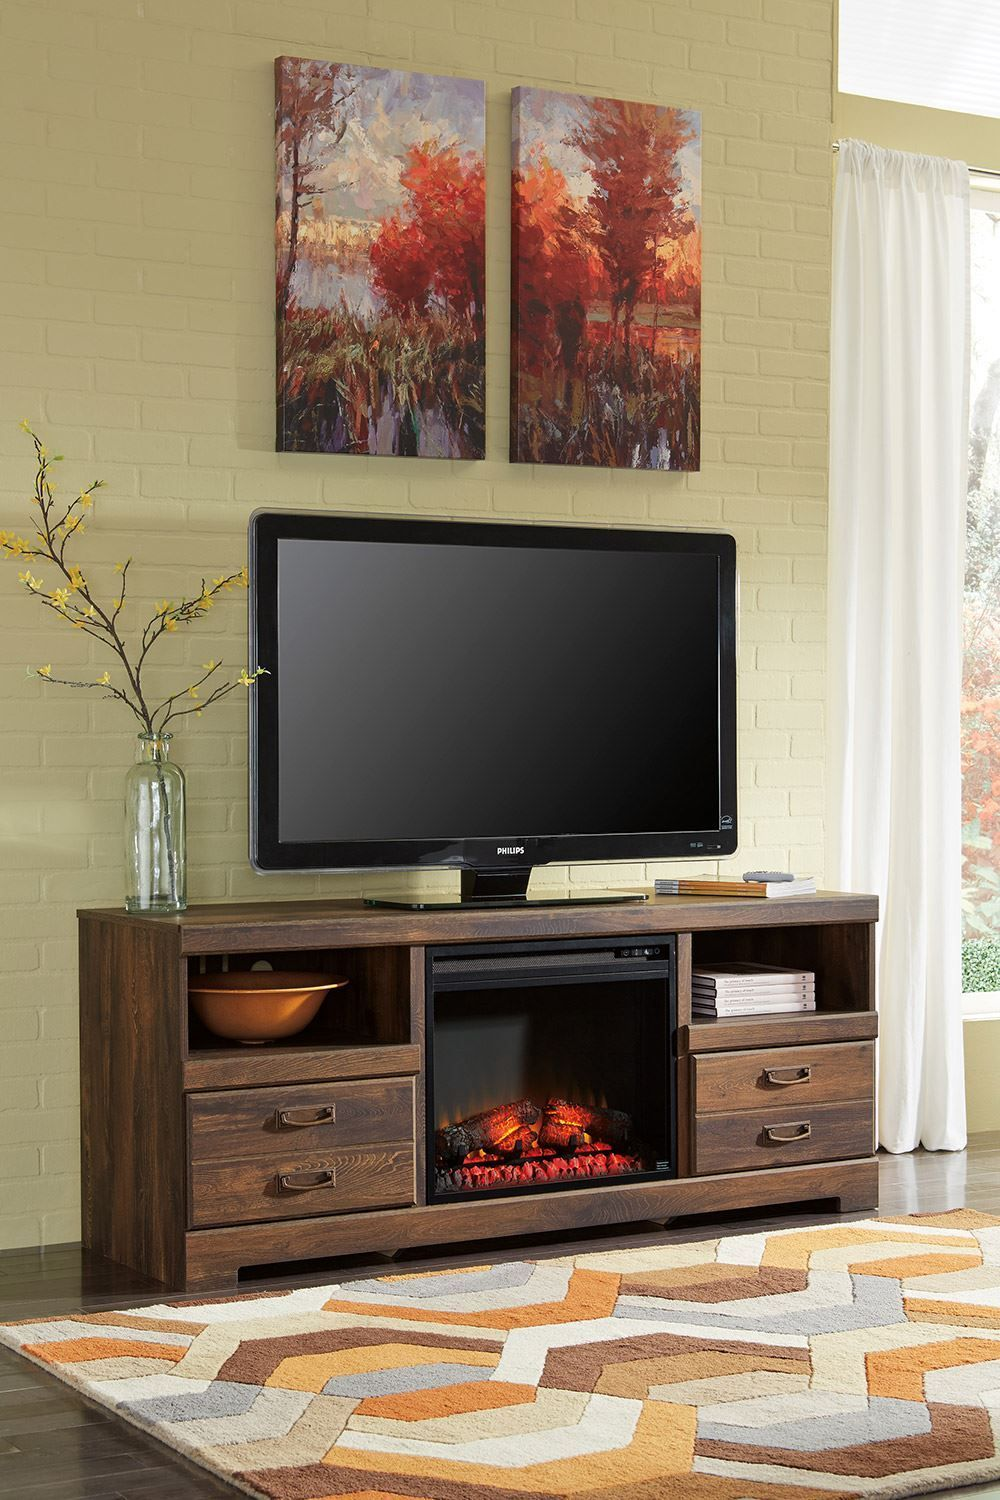 Picture of Quinden Fireplace Television Stand